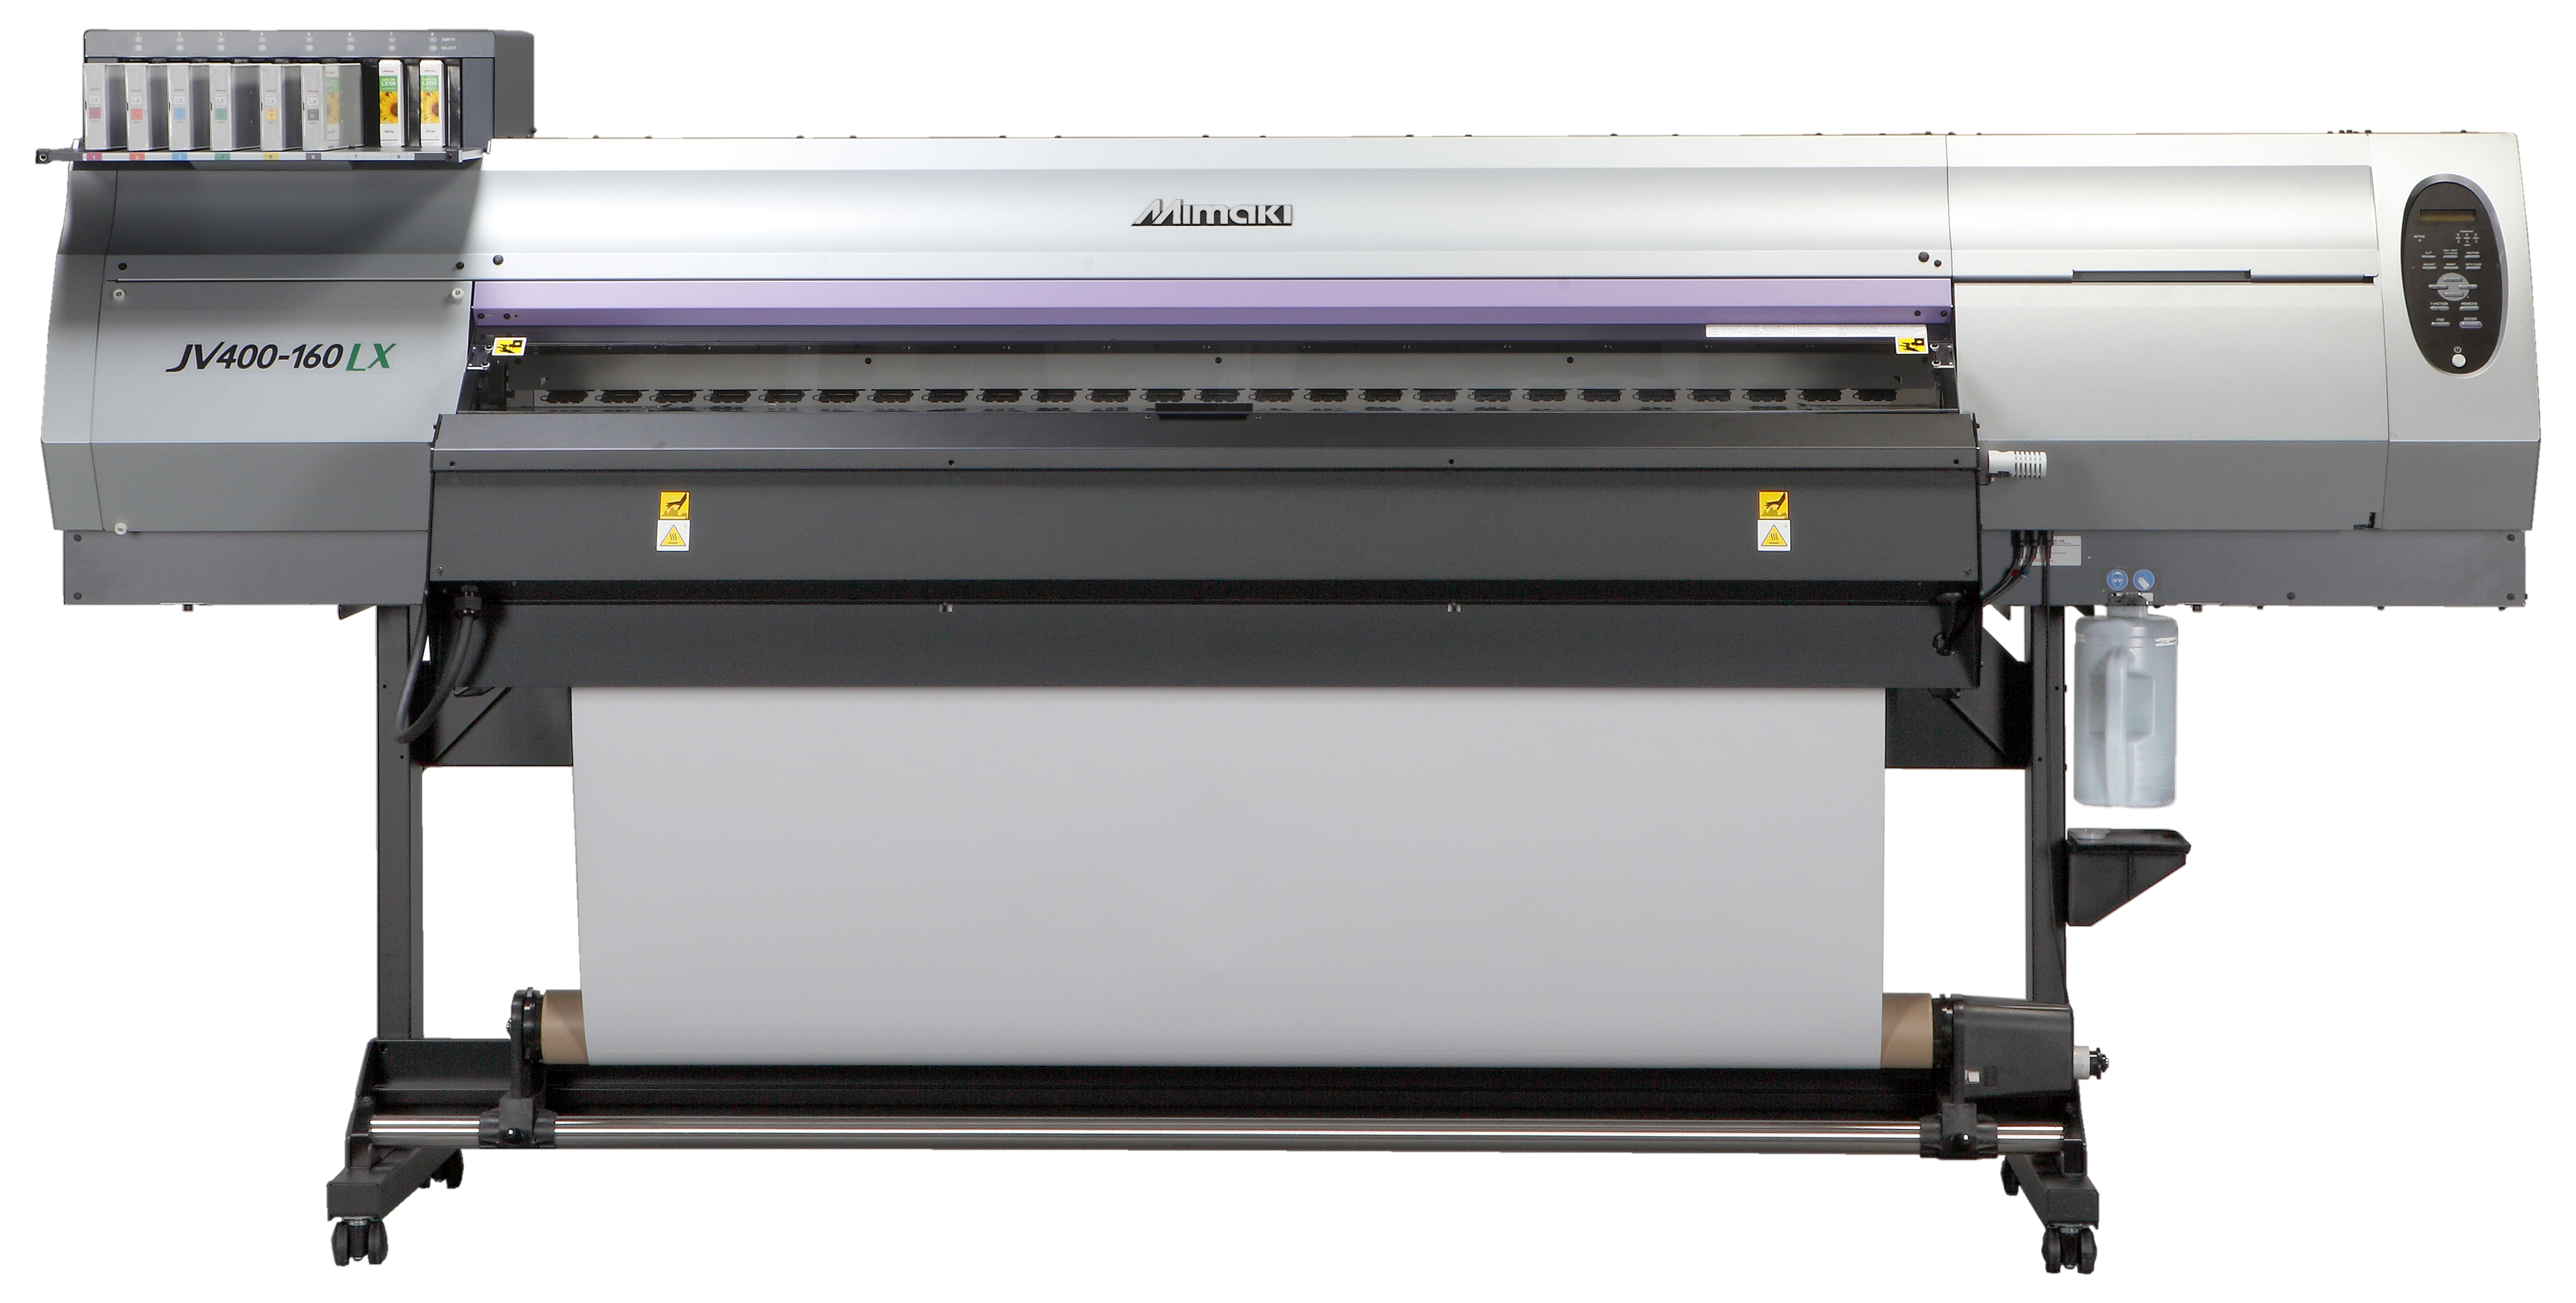 JVX400 LX Series A New Cooler, Cleaner and Greener Latex Printer